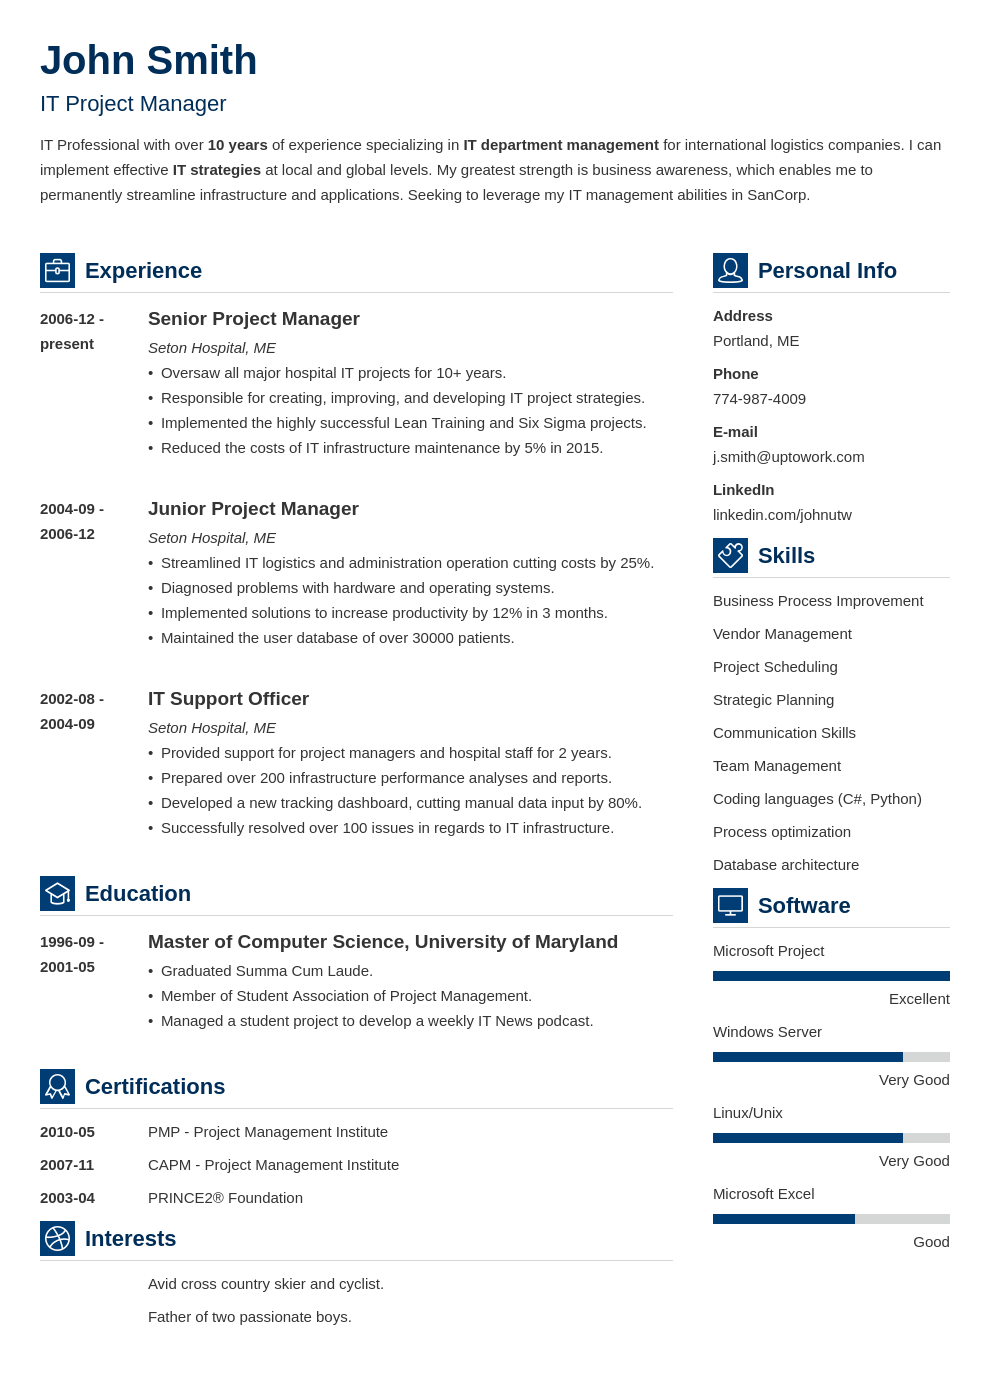 Resume Template And My Resume Draft 1 0 Best Resume Template Resume Template Professional Free Resume Template Download